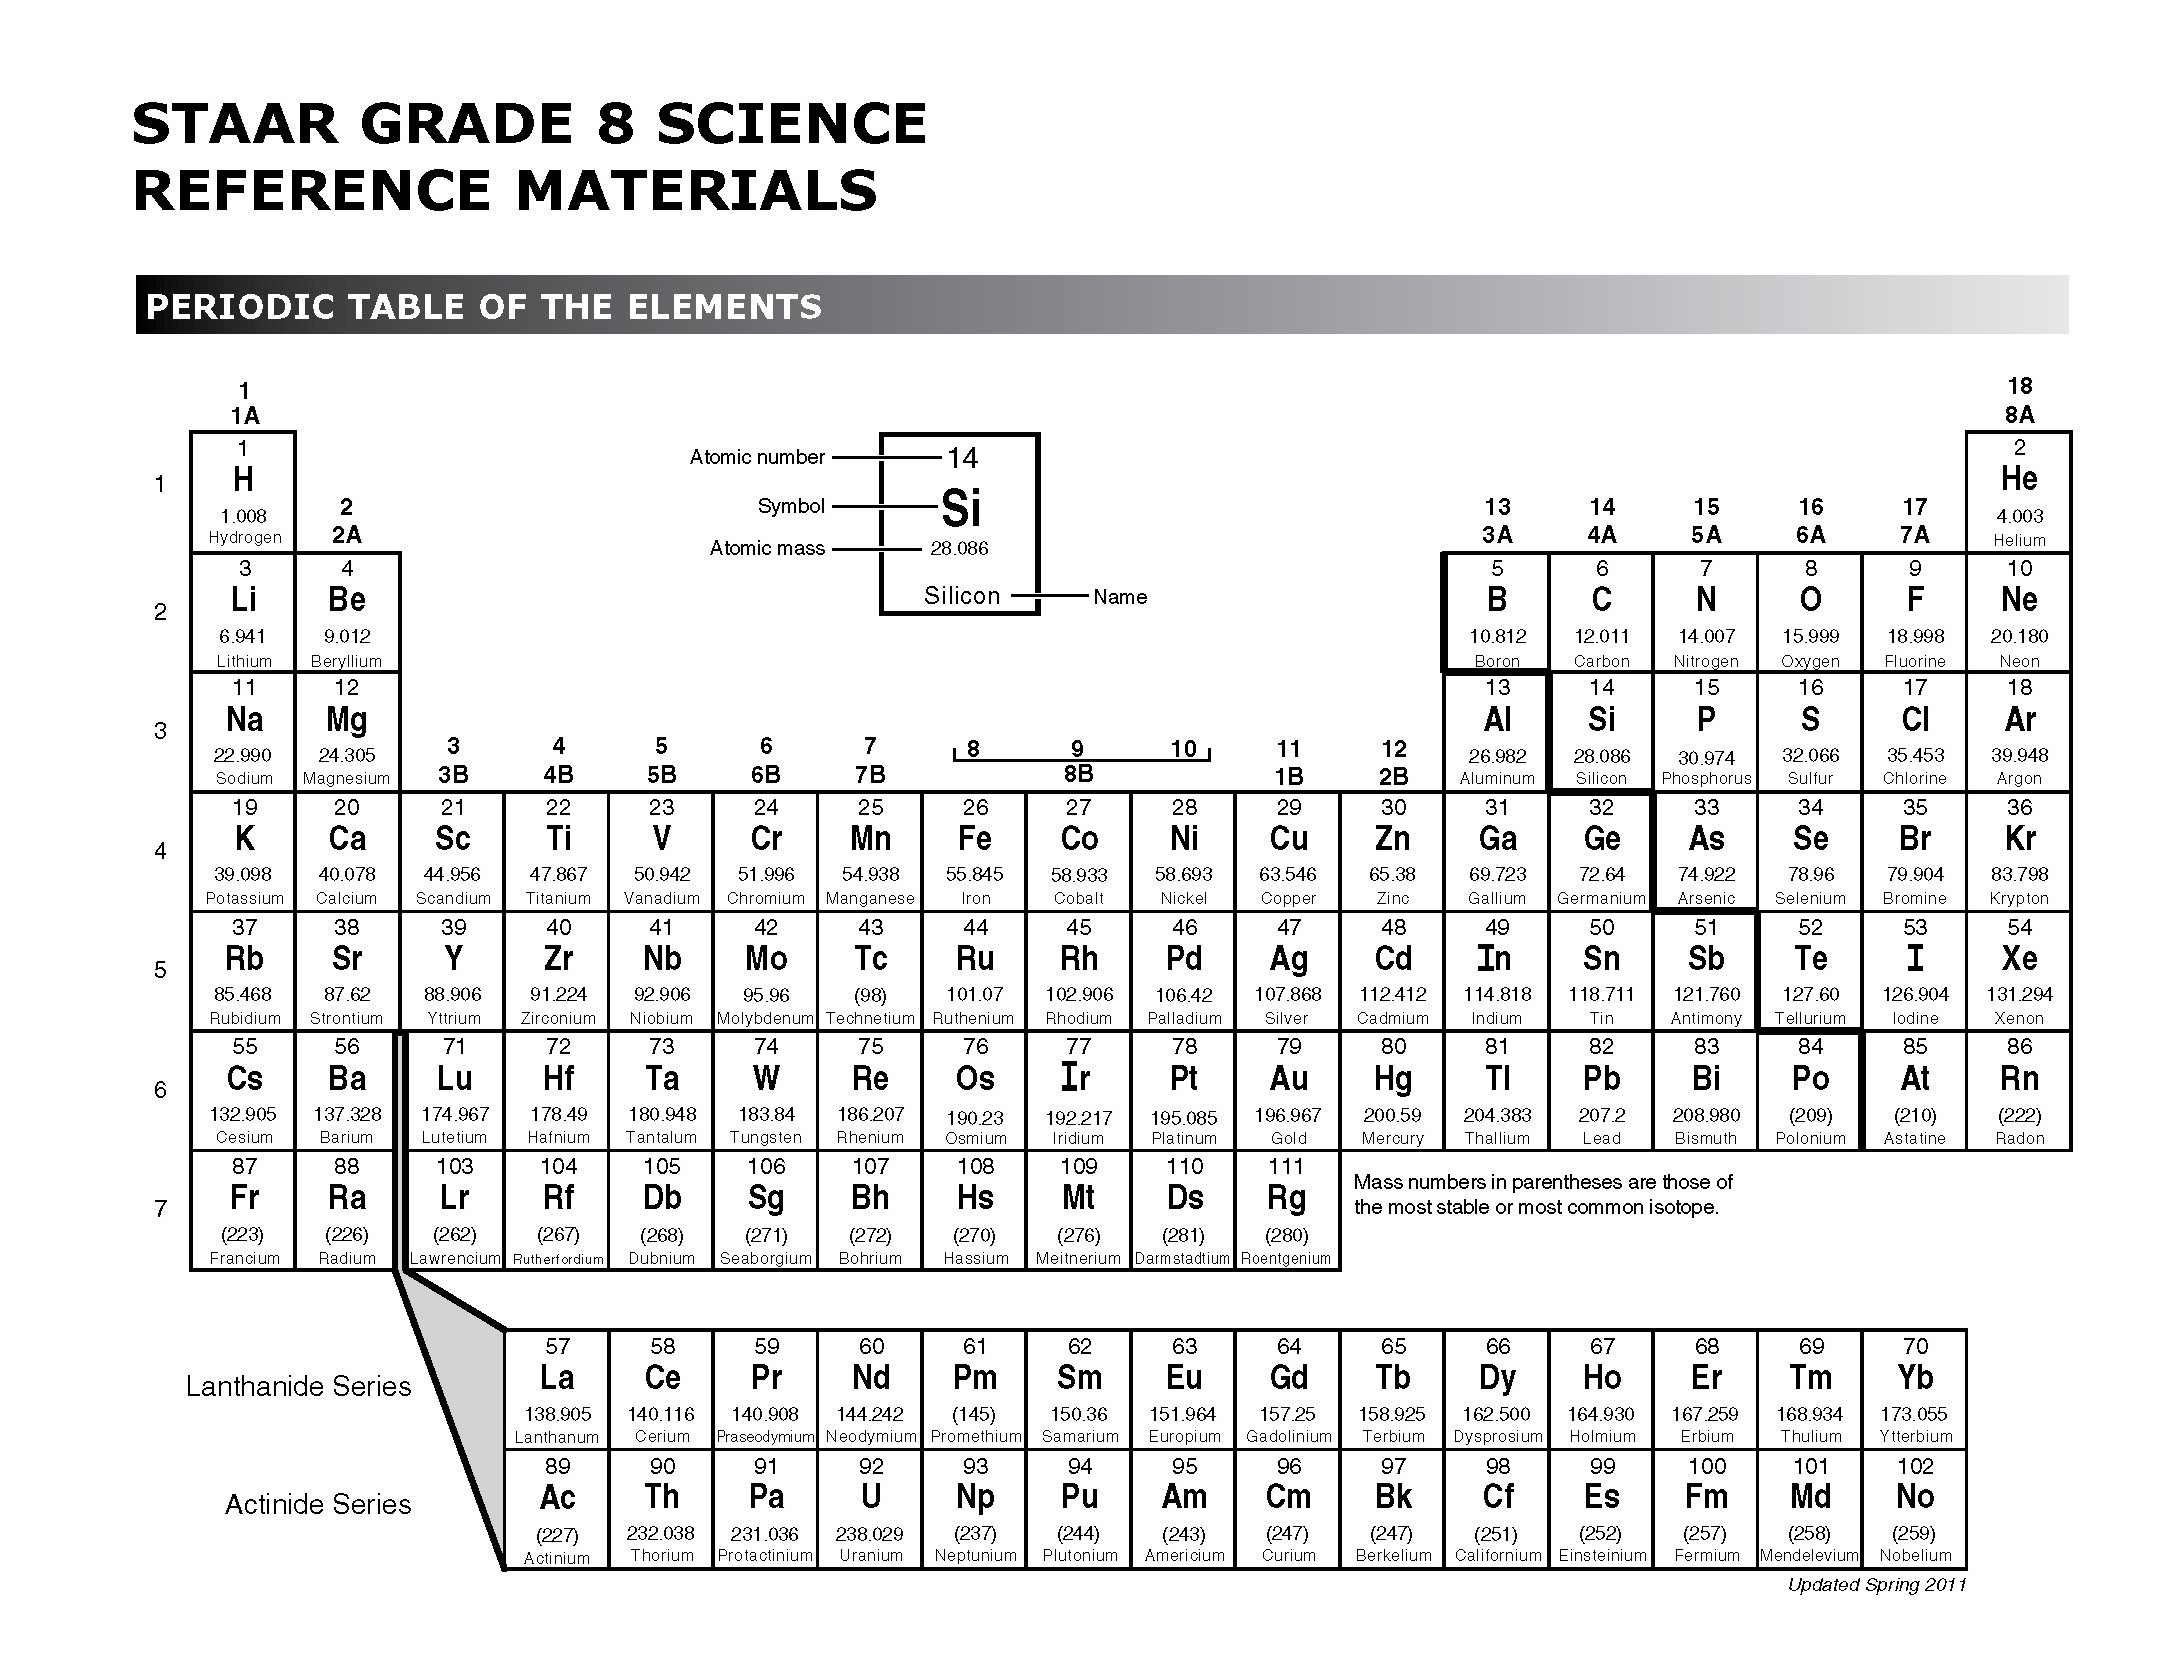 Staar chemistry periodic table images periodic table images gamestrikefo Images